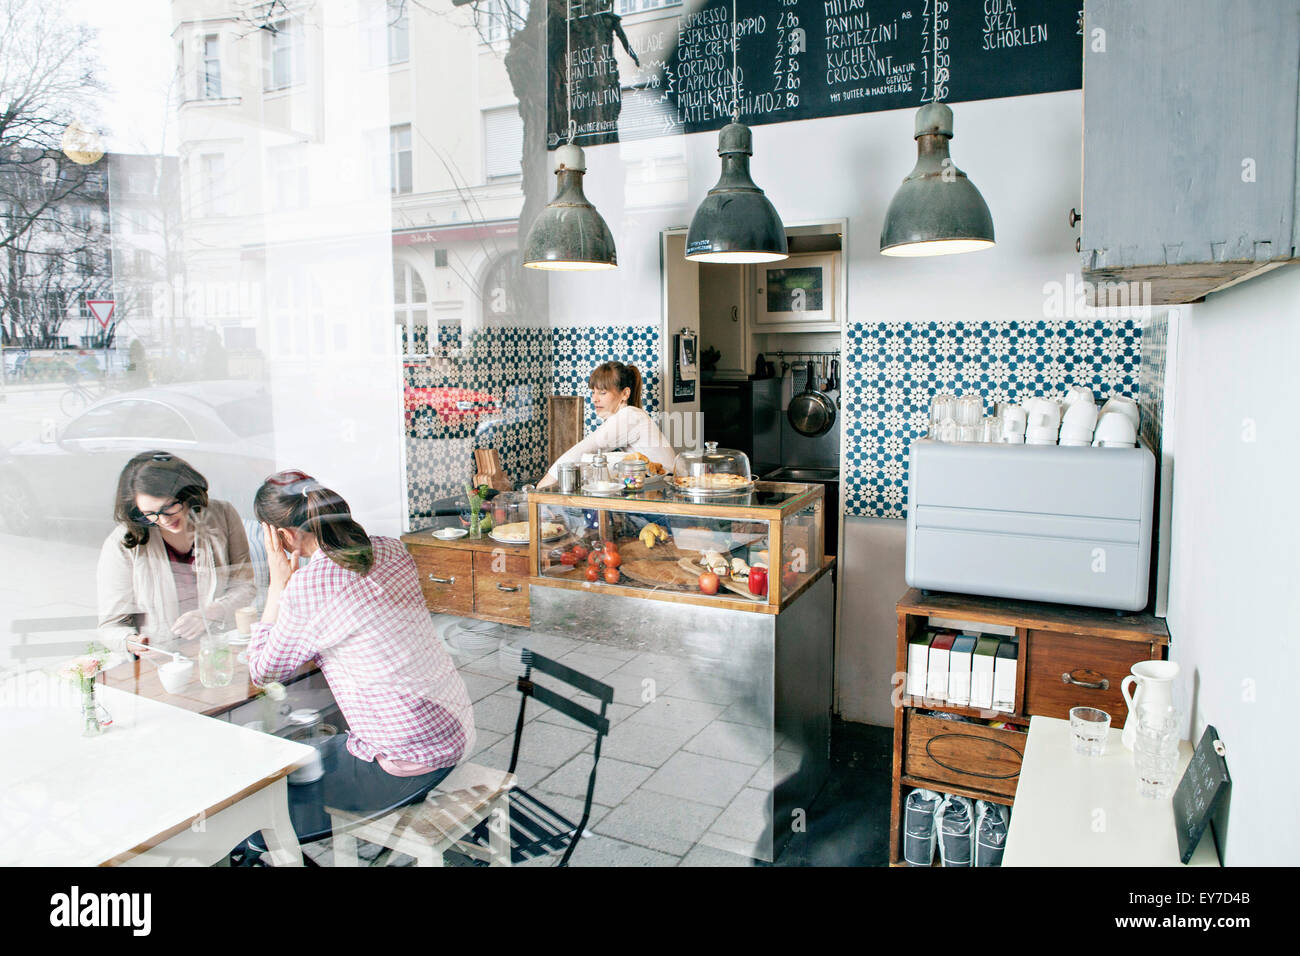 Guests and waitress in cafe - Stock Image